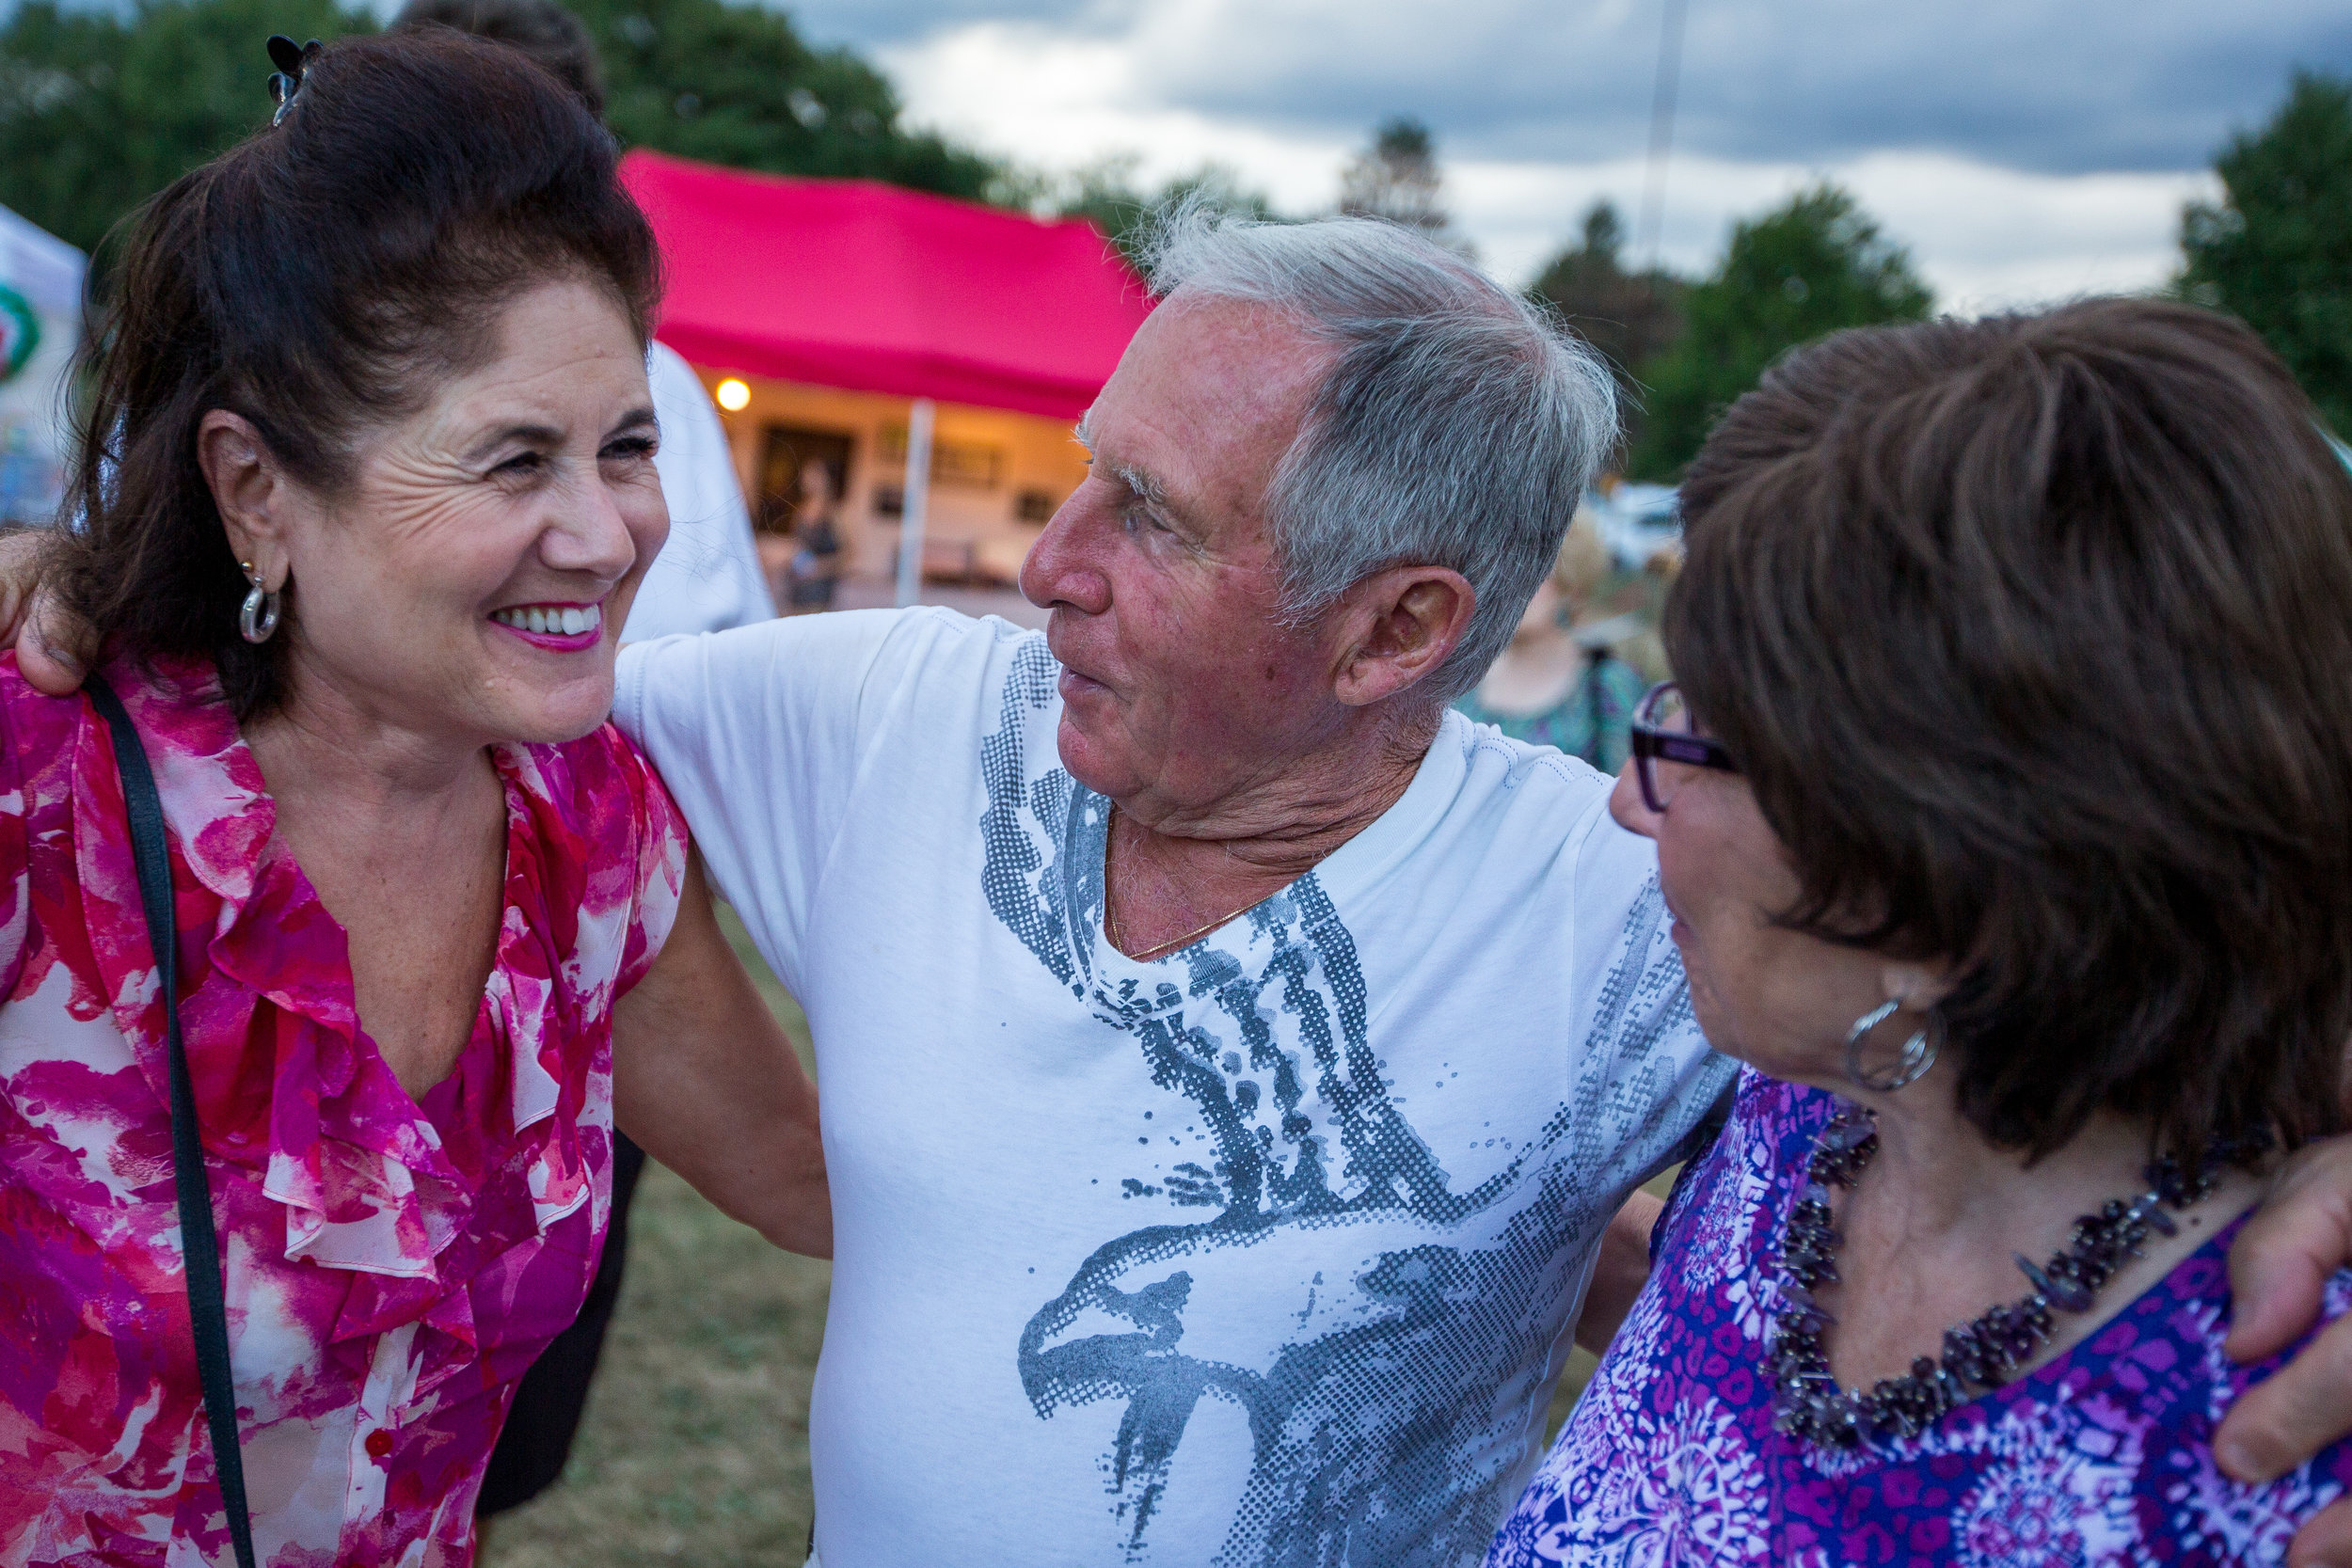 Henry Bufalini, center, hugs Carol Fox, left and Jeanne Smith at the 91st San Rocco Festa in Aliquippa on Saturday afternoon. The festival, which originated in the town of Patrica, Italy, took place over three days and featured live music, vendors, fireworks, a mass and the traditional baby doll dance on Sunday evening.